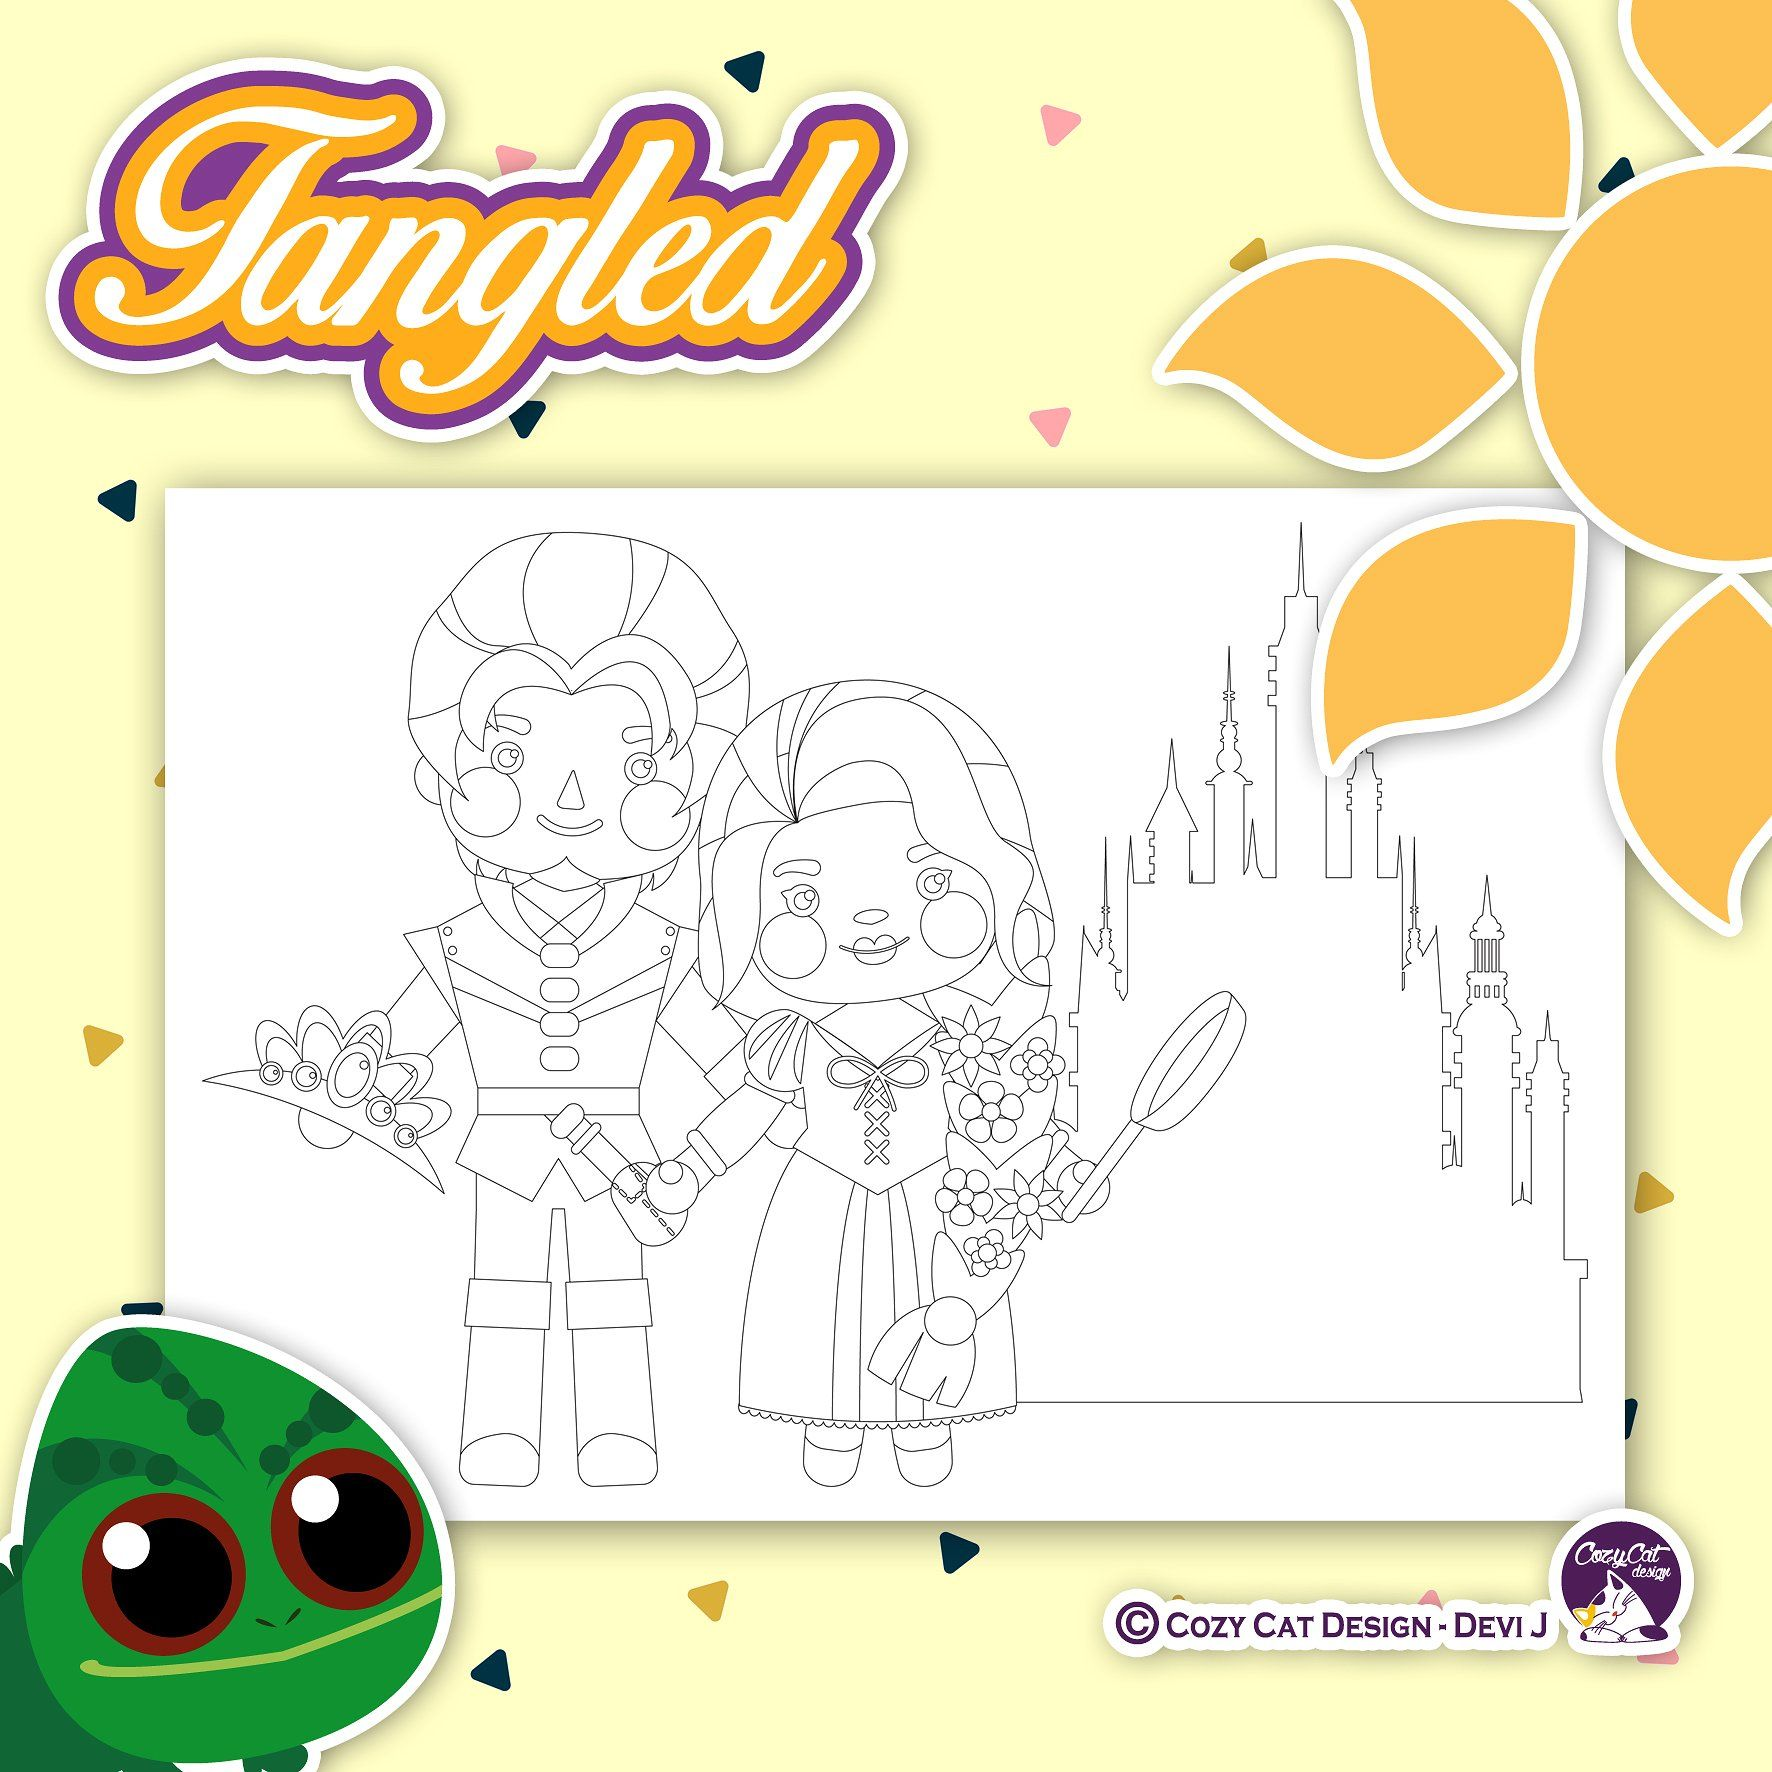 Tangled Coloring Pages Tangled Rapunzel Magic Hair Tower Castle